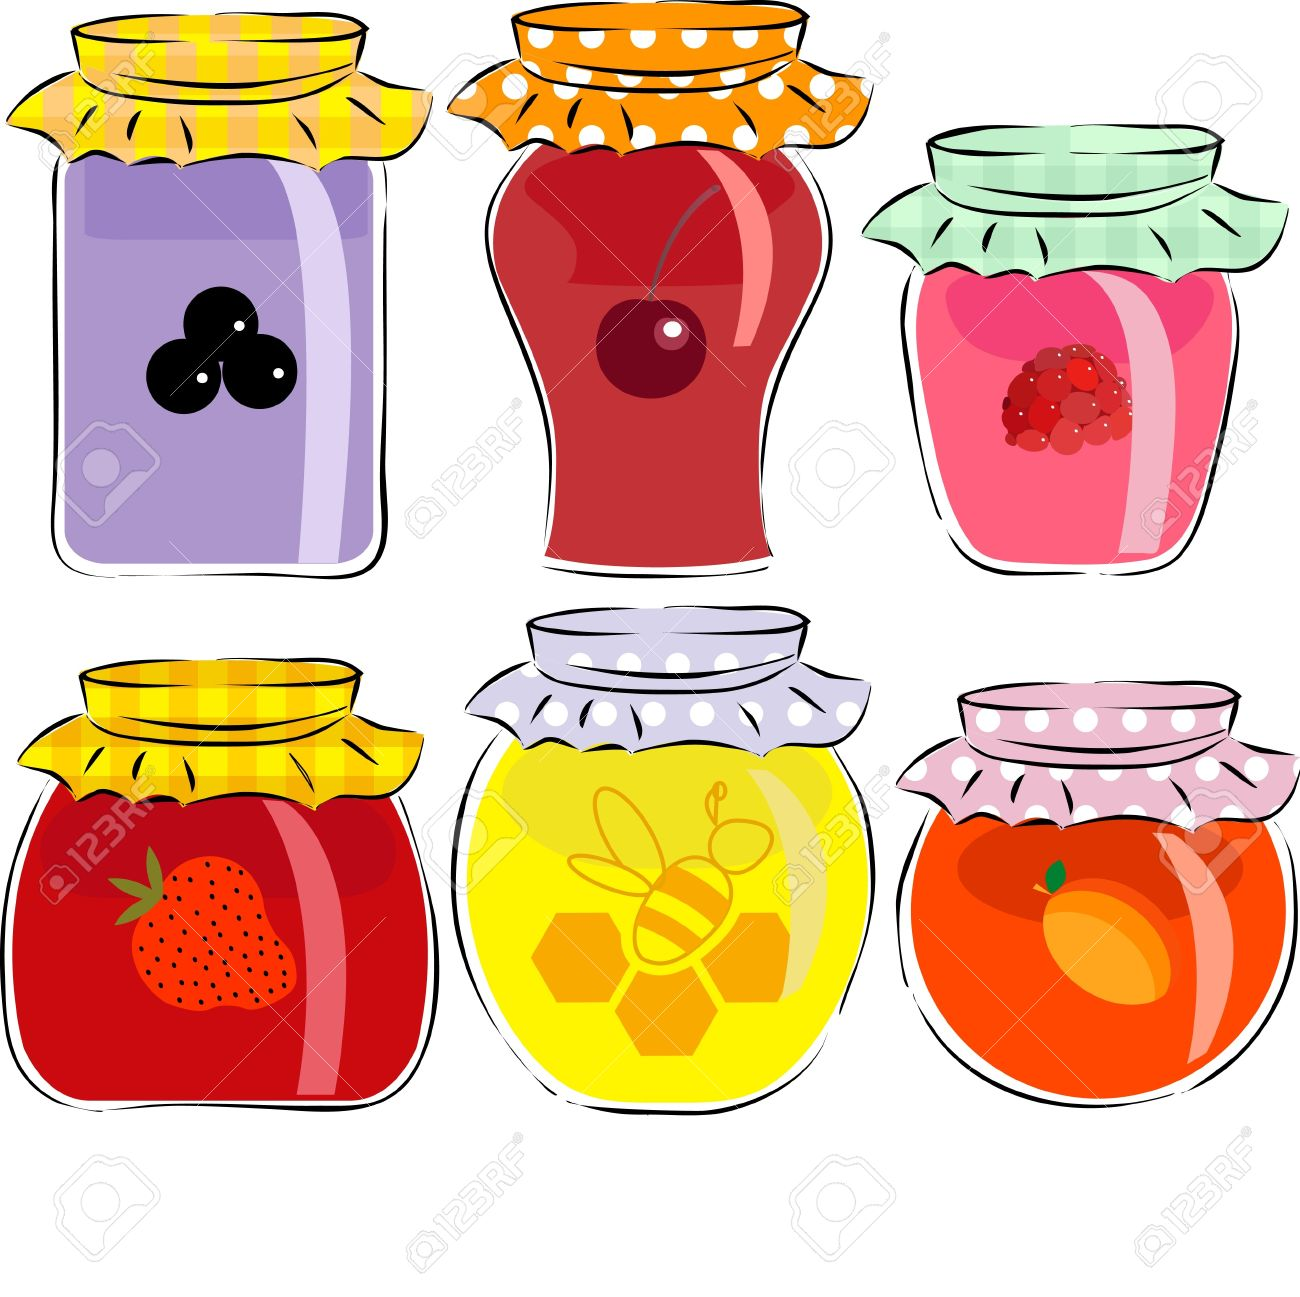 Jar of jam clipart free.